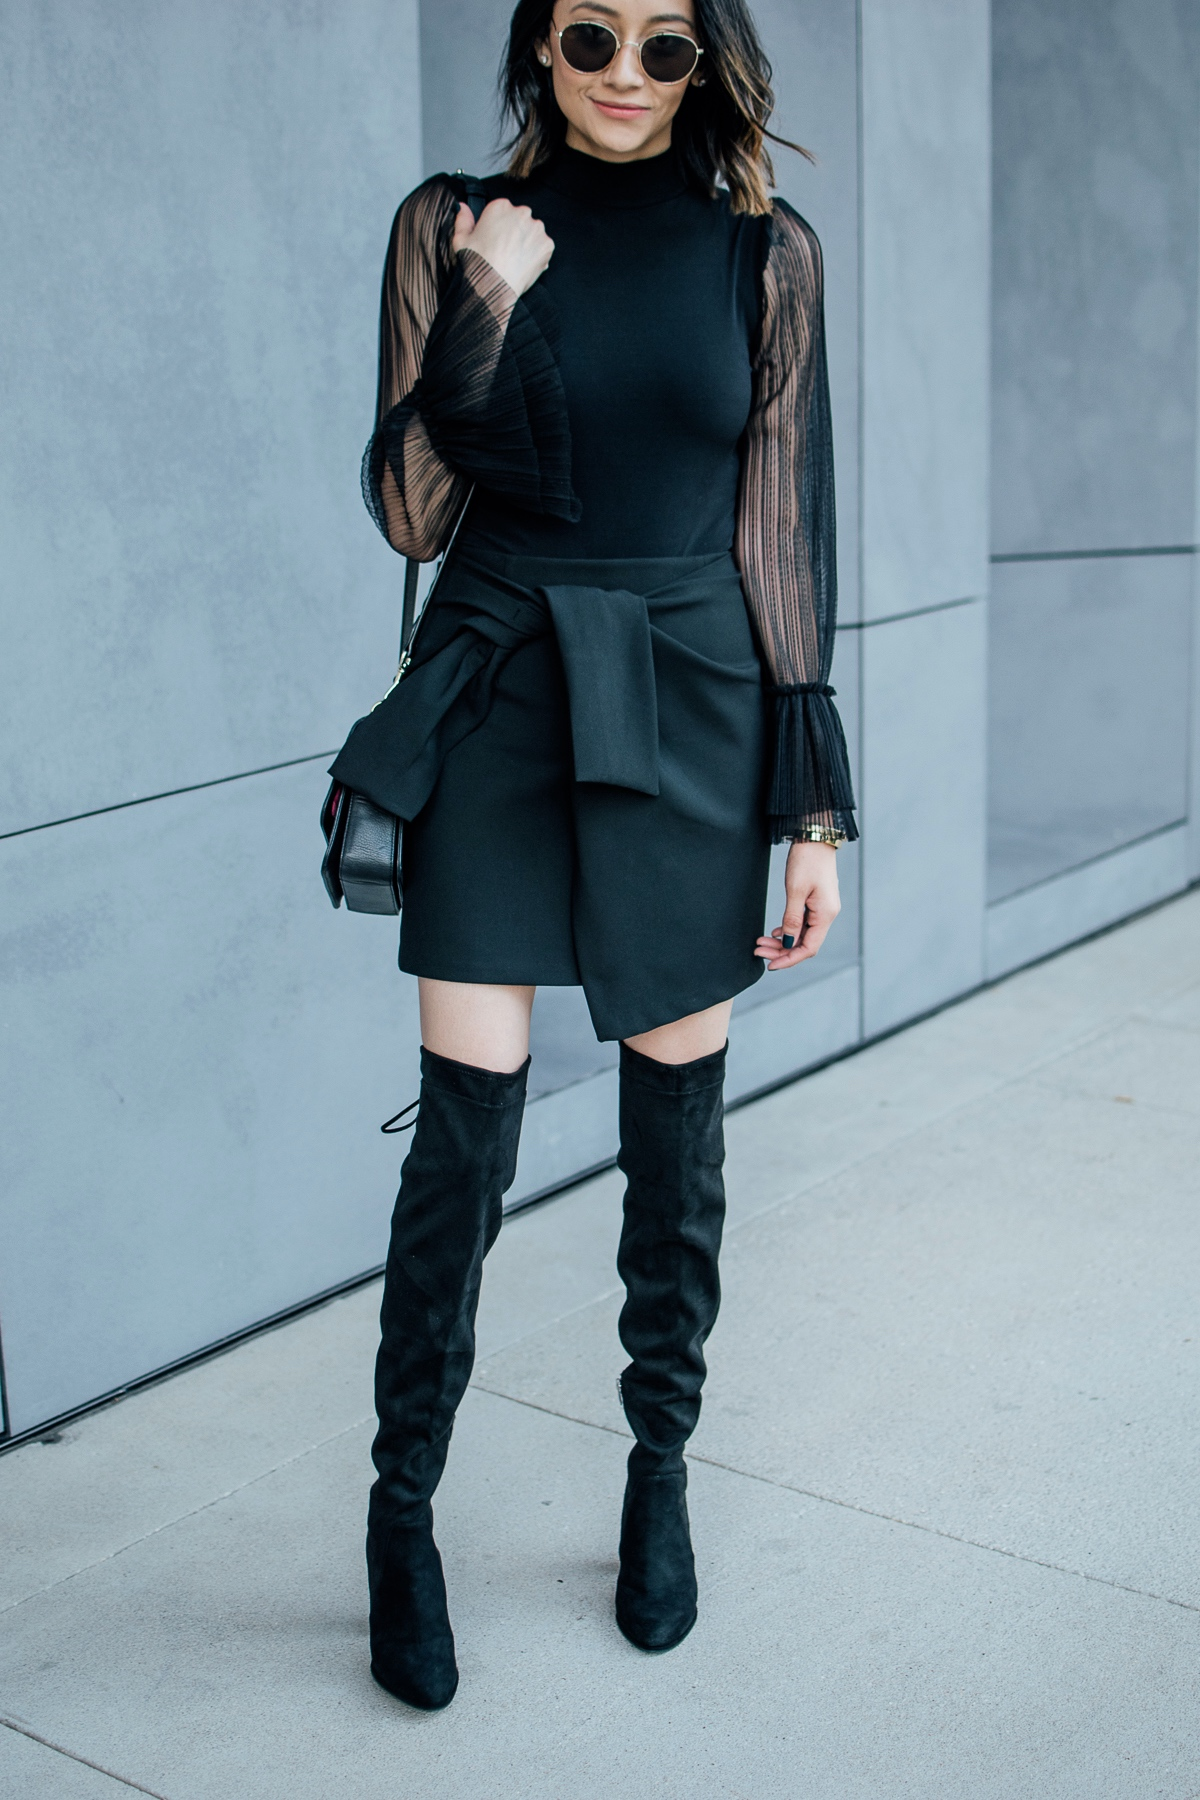 Lilly Beltran of Daily Craving in an all black look with over the knee boots and a wrap skirt